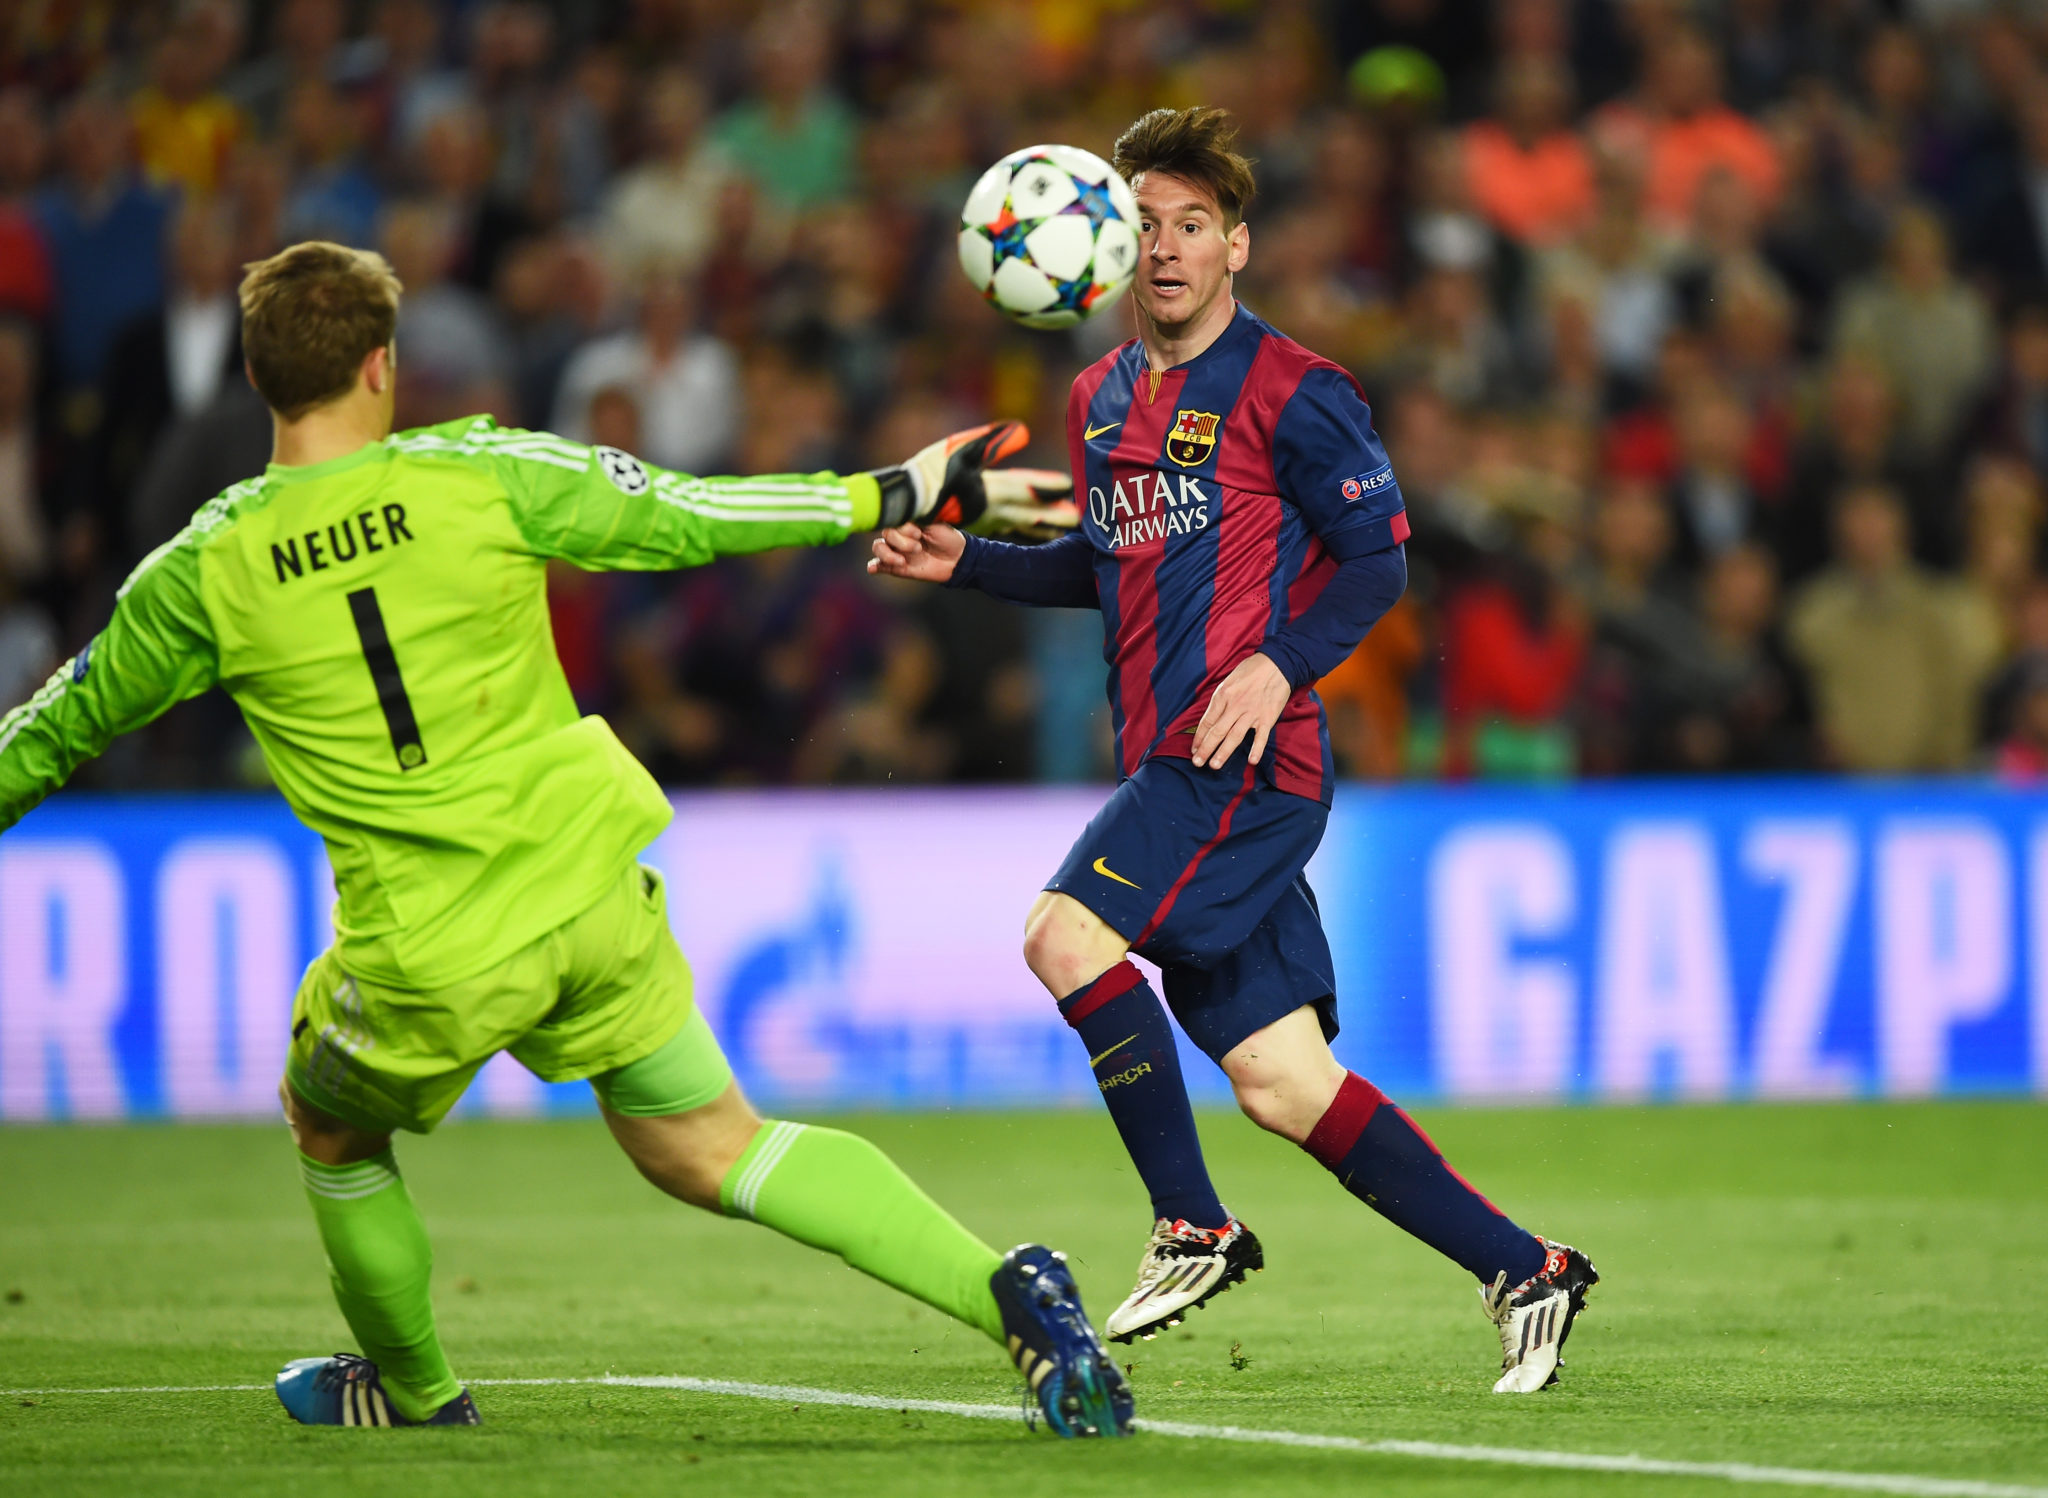 Messi überwindet Manuel Neuer. (Photo by Shaun Botterill/Getty Images)